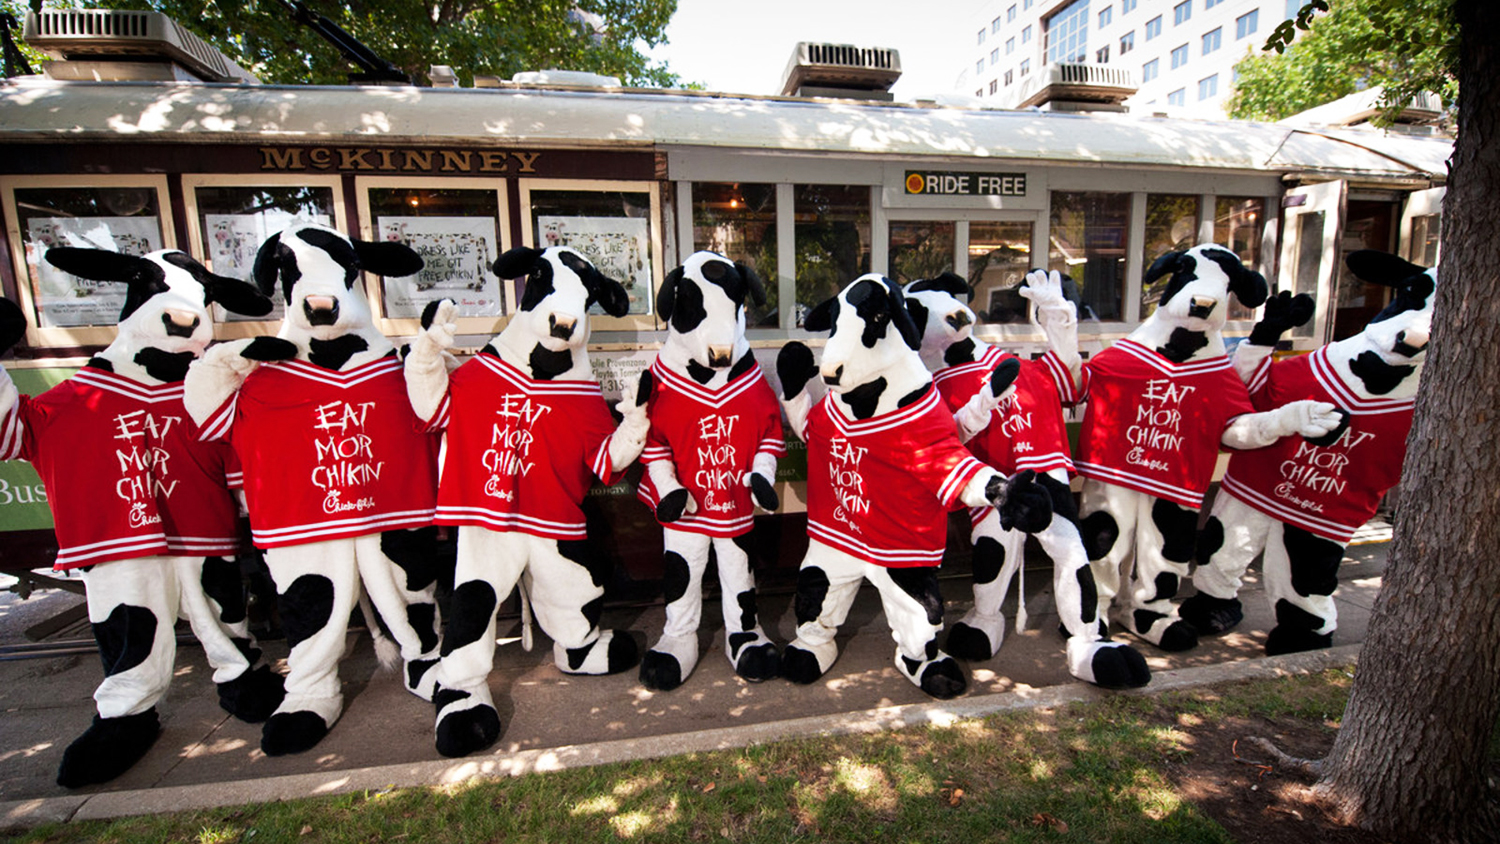 cow costume free meal chic fil a